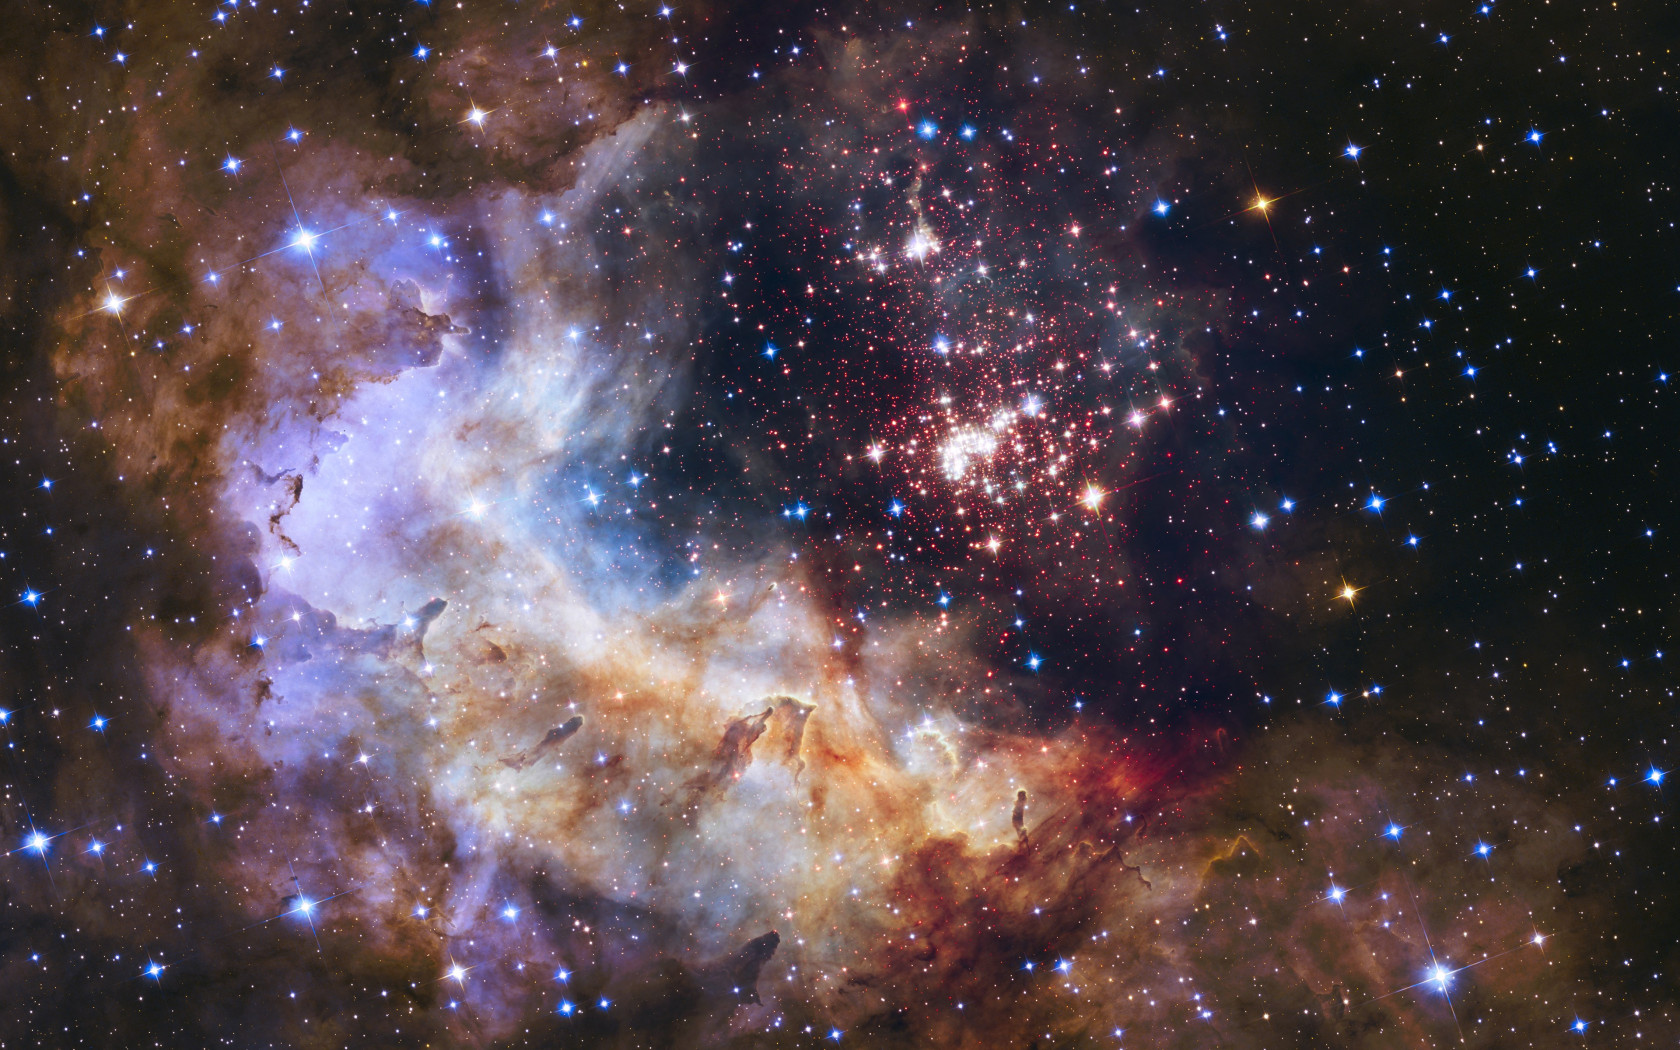 Universe seen through Hubble Space Telescope wallpaper 1680x1050